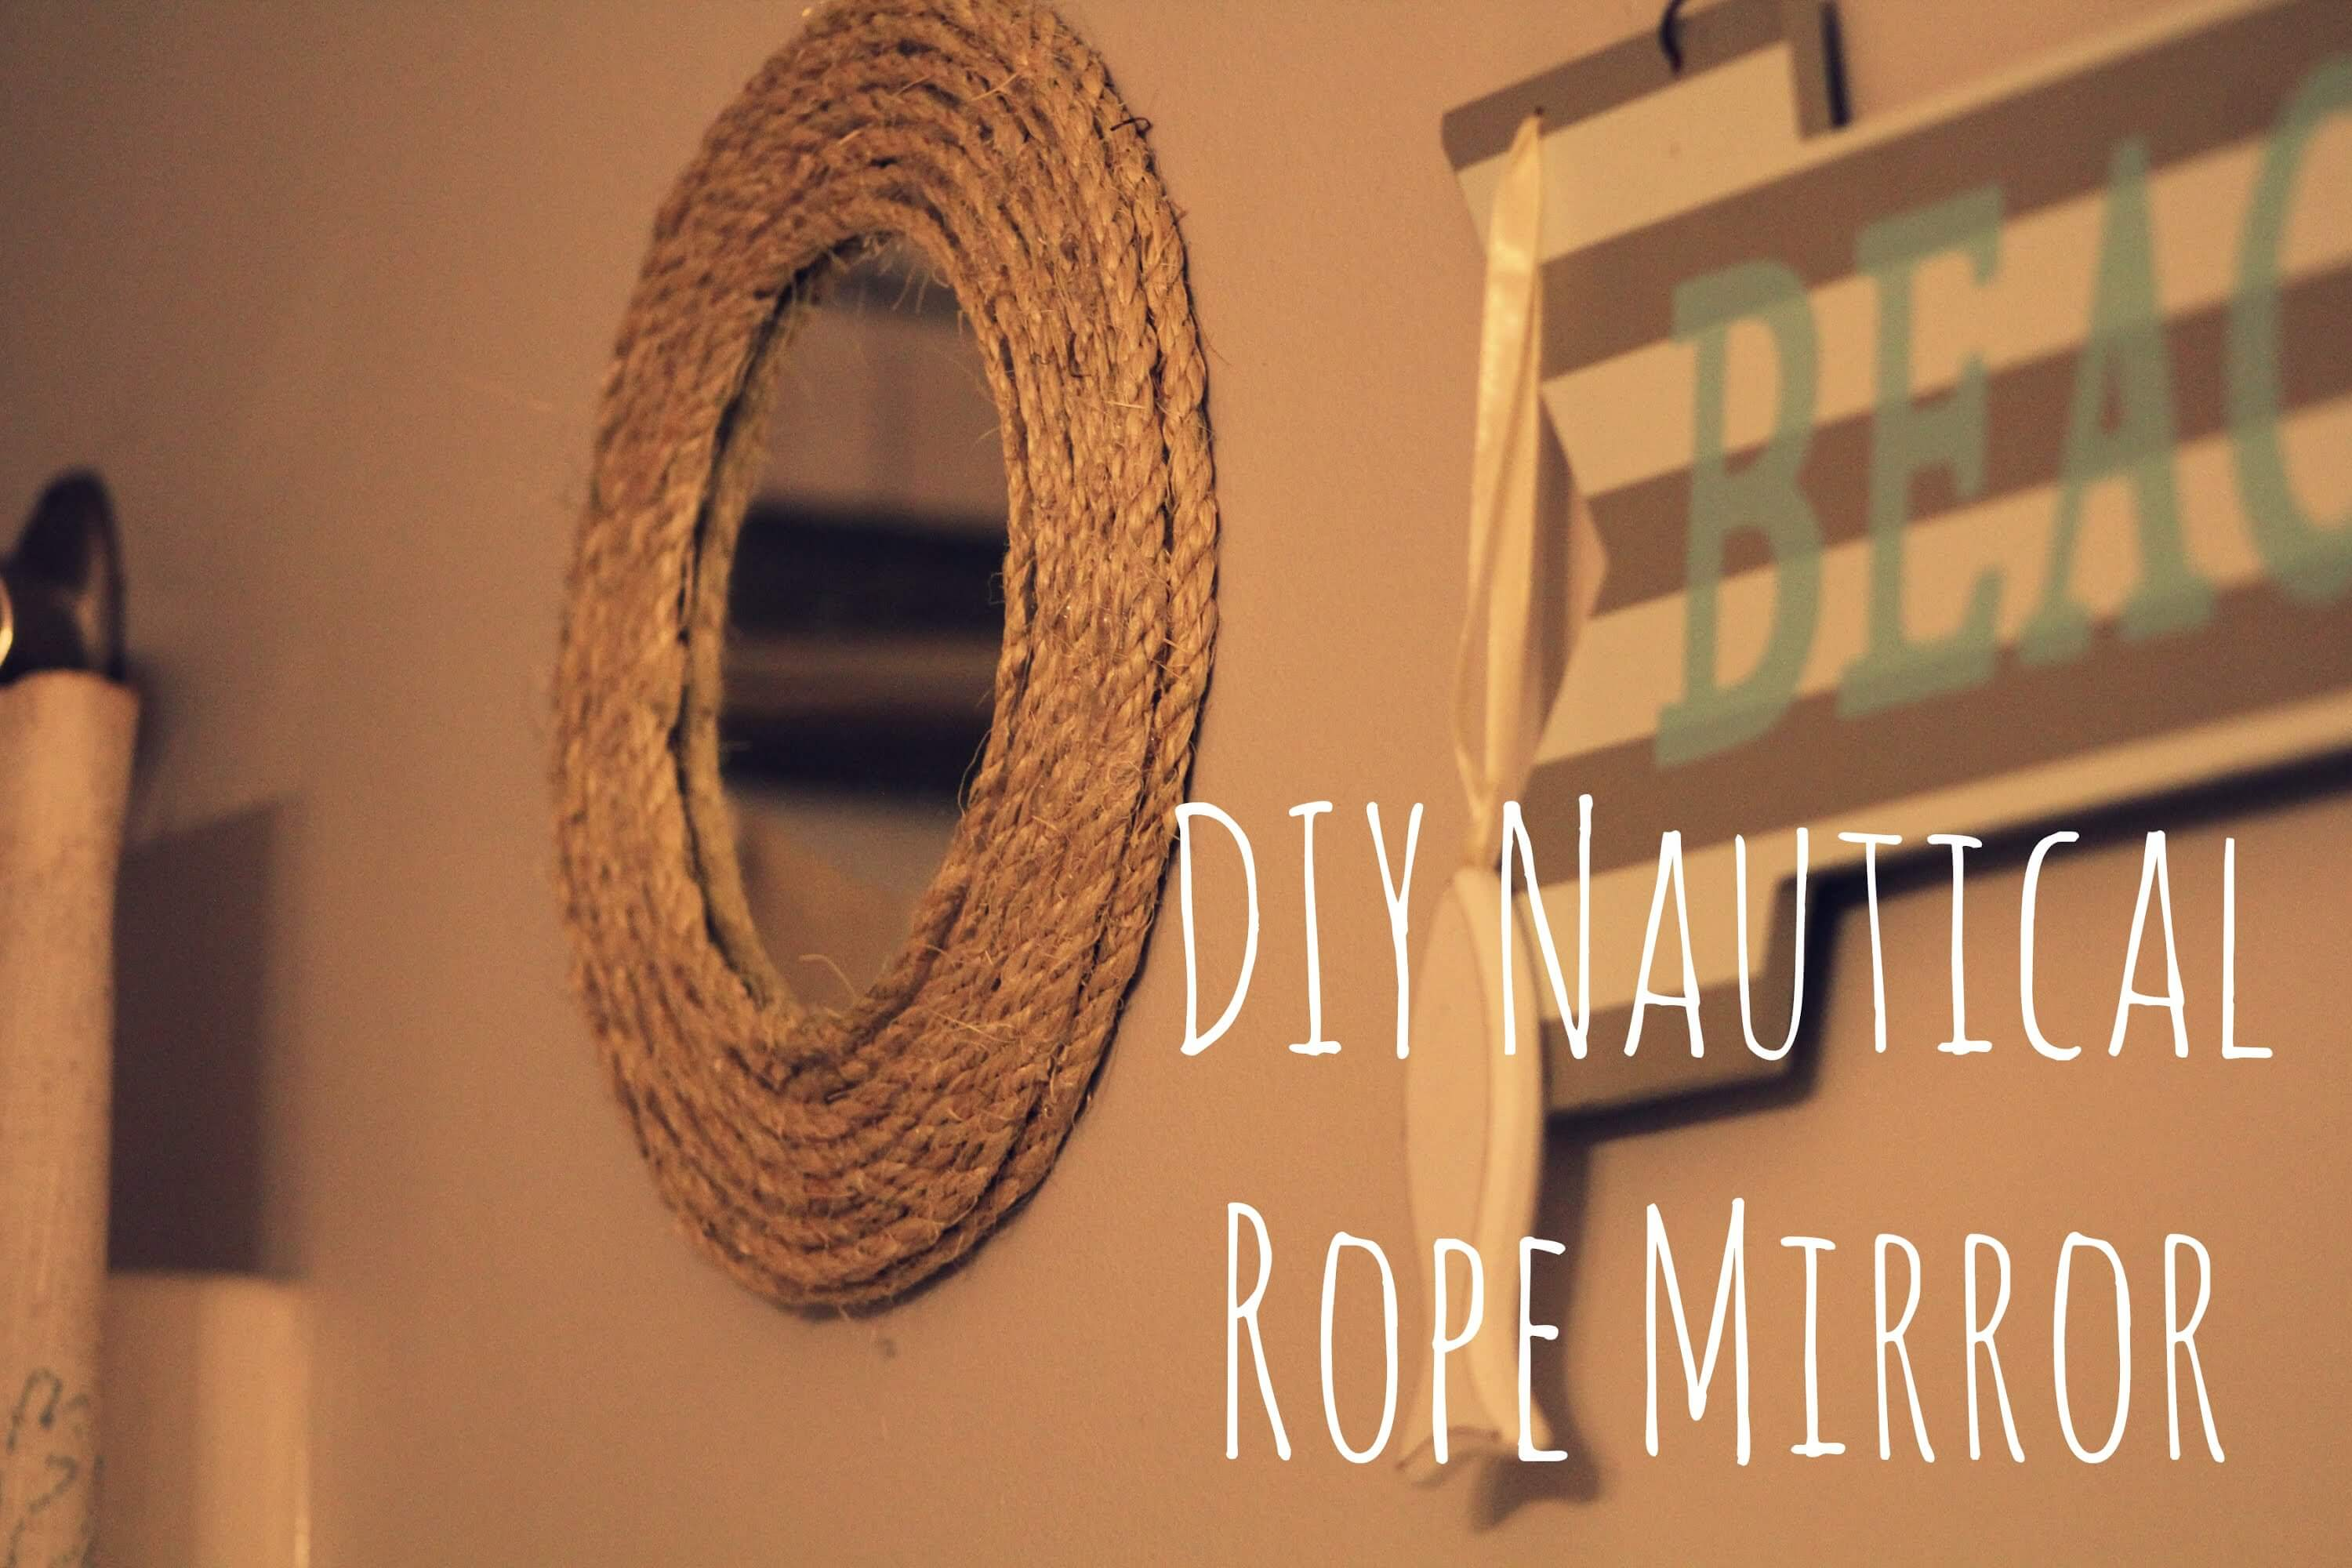 diy decor ideas beach decor nautical rope mirror dezine fun